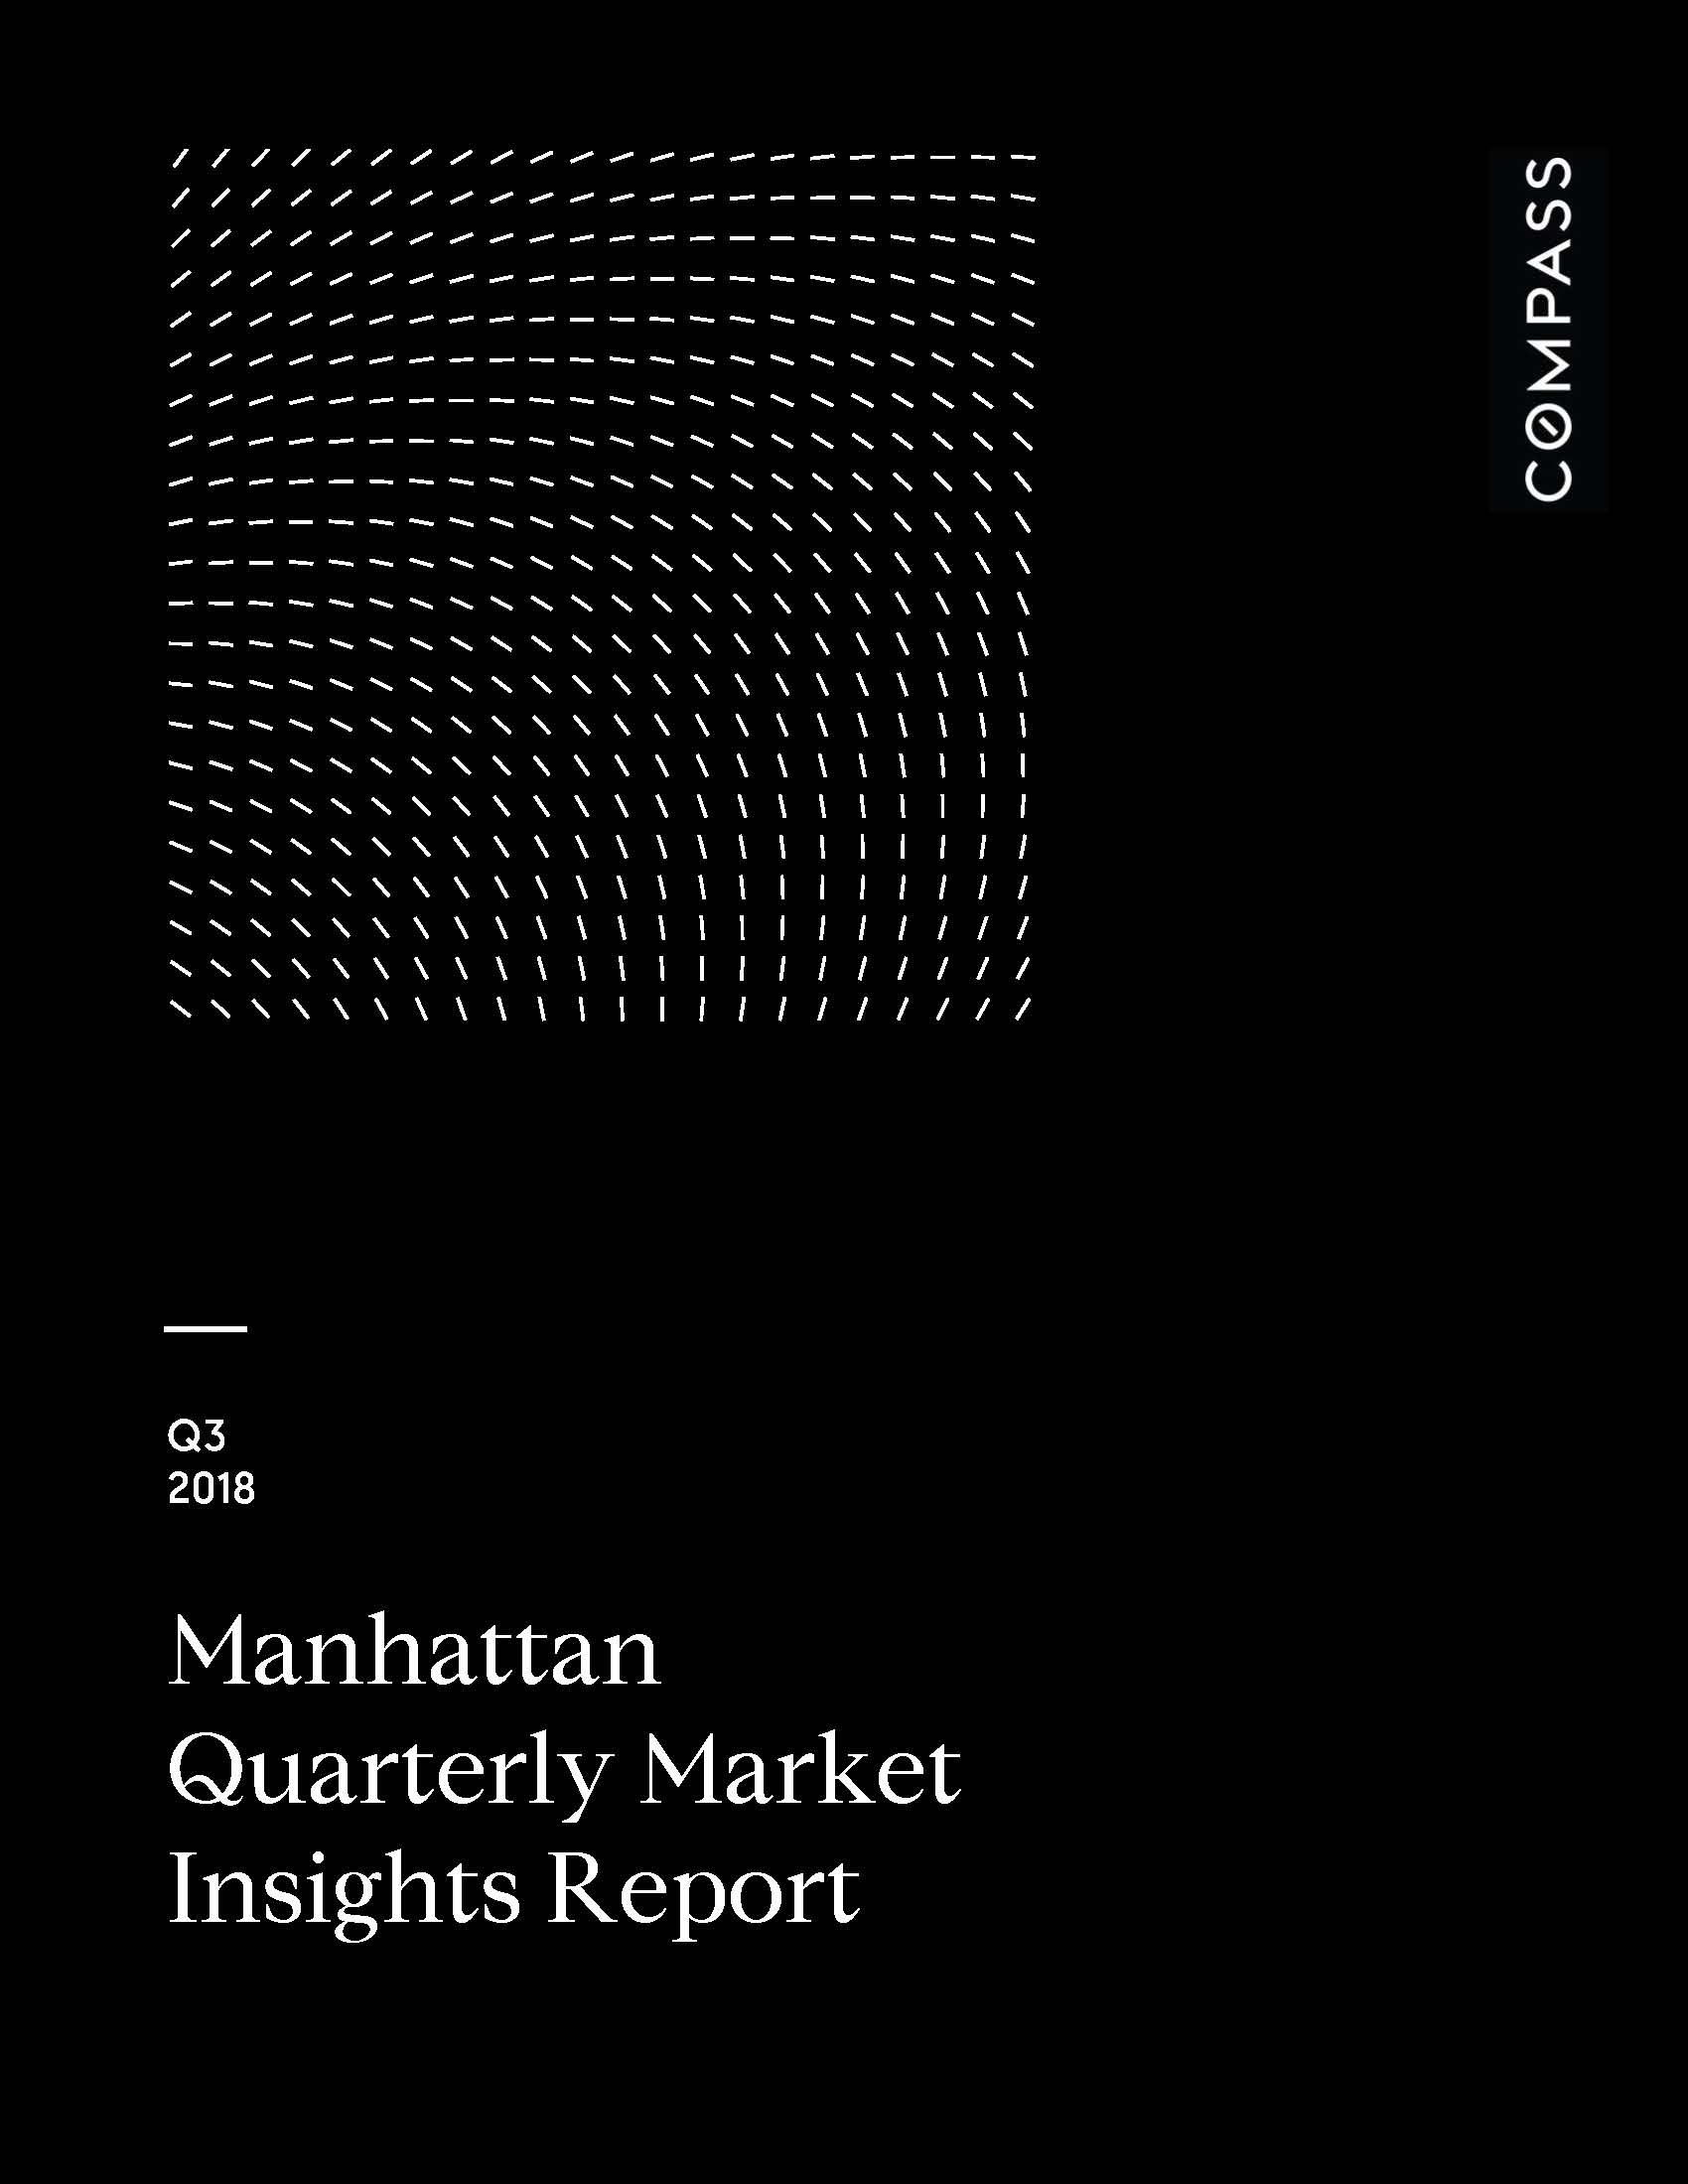 Manhattan Quarterly Market Insights Report - Q3 2018